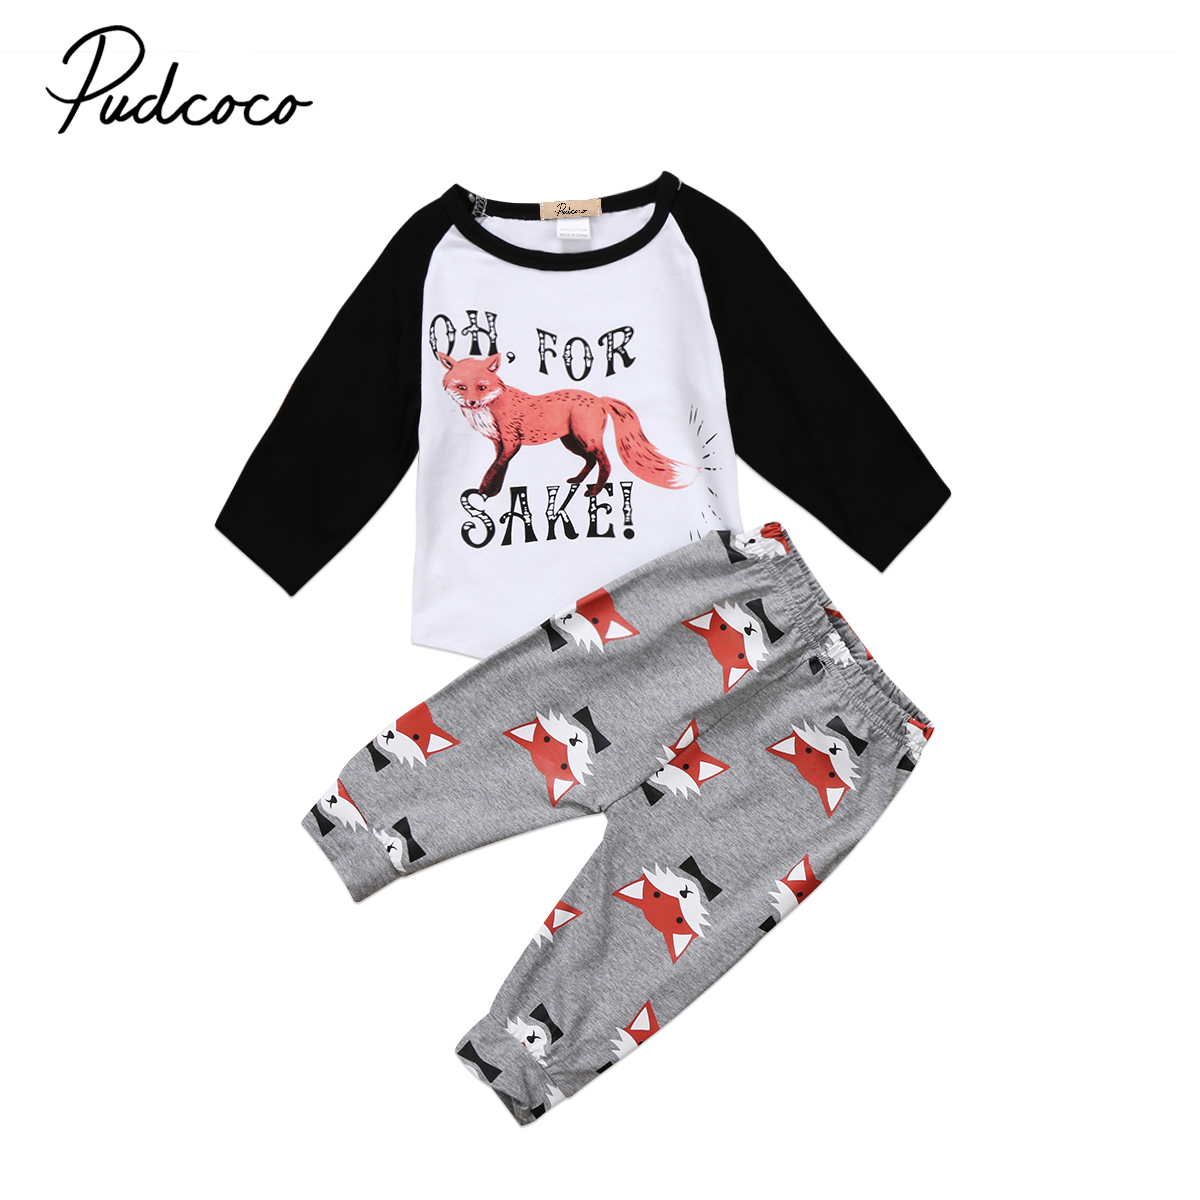 Pudcoco Newborn Baby Boys Girl Clothes Fox T-shirt +Long Pants Outfits Set 0-24 Months Helen115